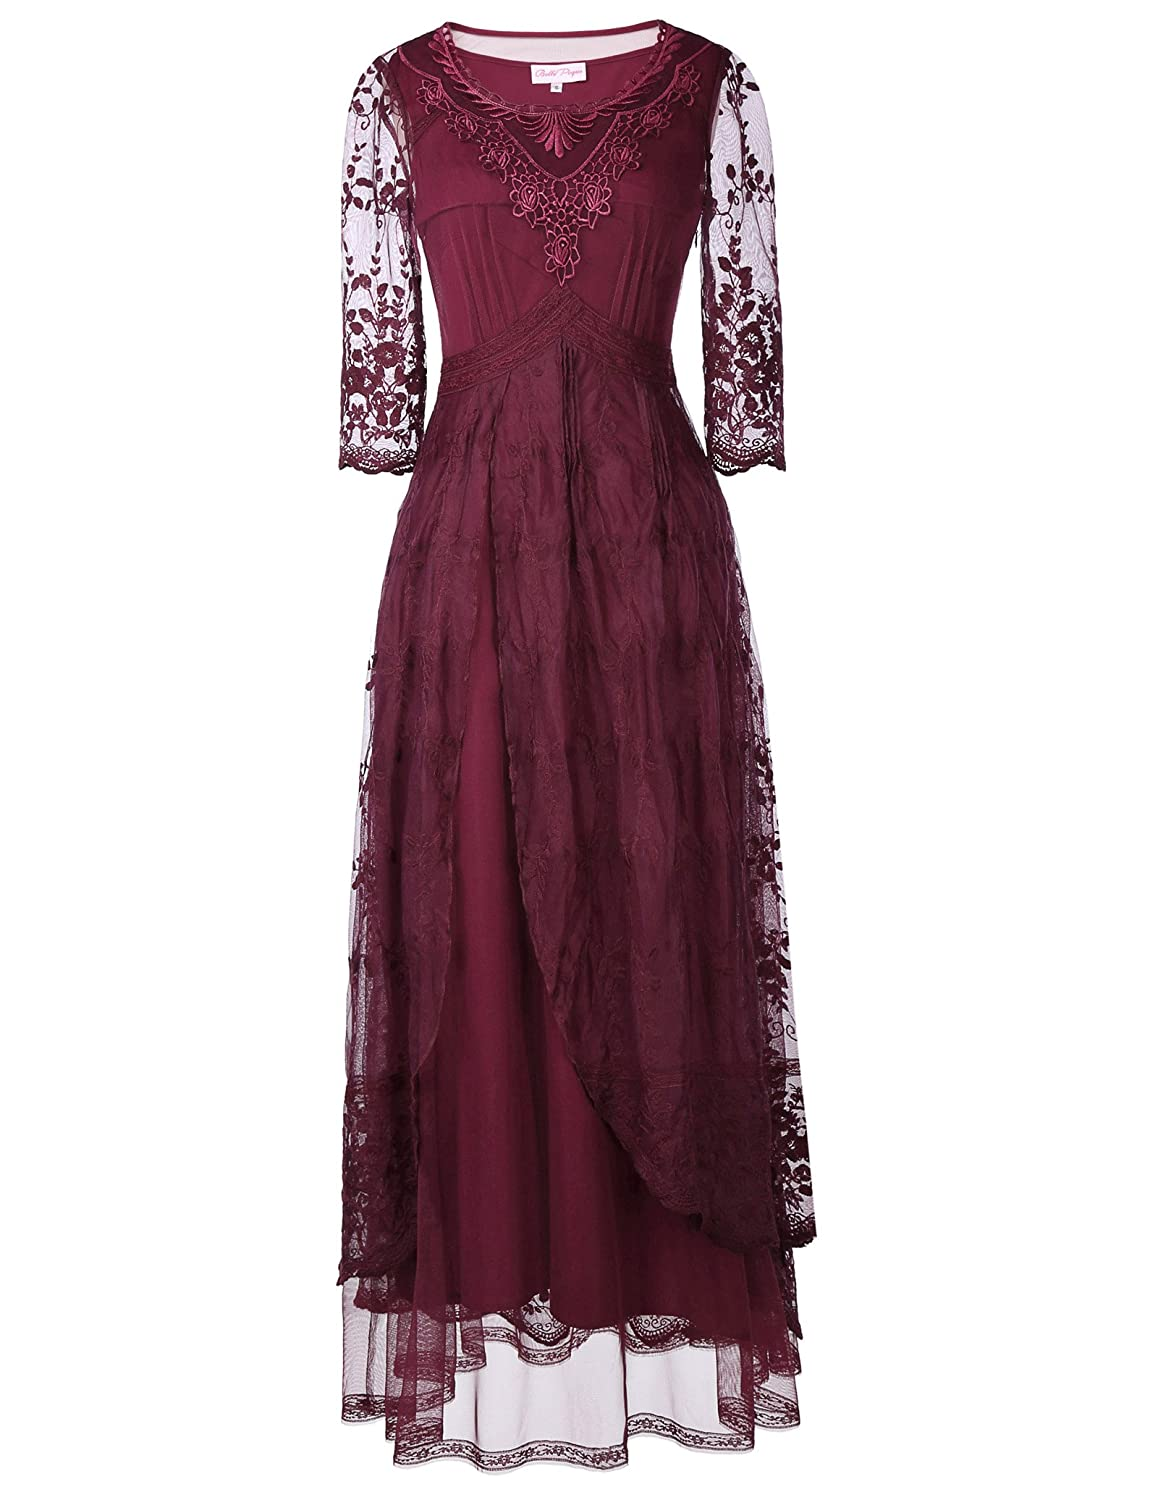 Vintage Tea Dresses, Floral Tea Dresses, Tea Length Dresses Belle Poque Steampunk Victorian Titanic Lace Maxi Dress Tea Party Gown Antique Dress $43.99 AT vintagedancer.com